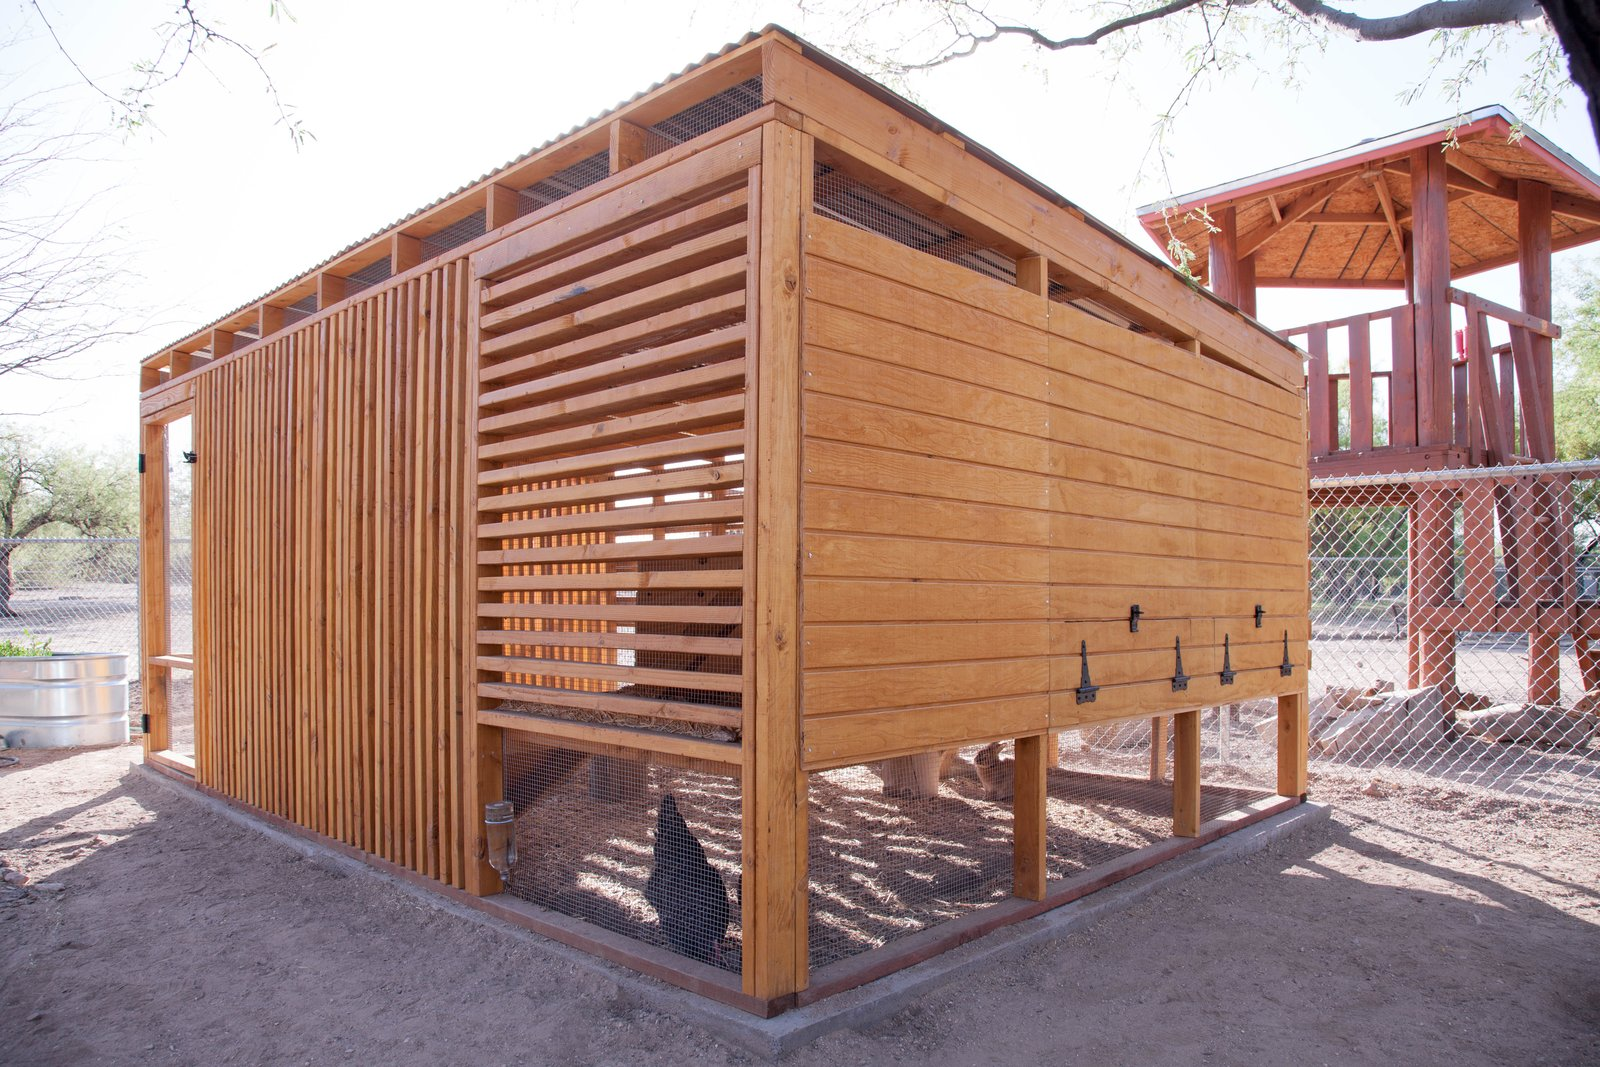 Some sides have wood siding rather than louvered wood because of the orientation to the sun.